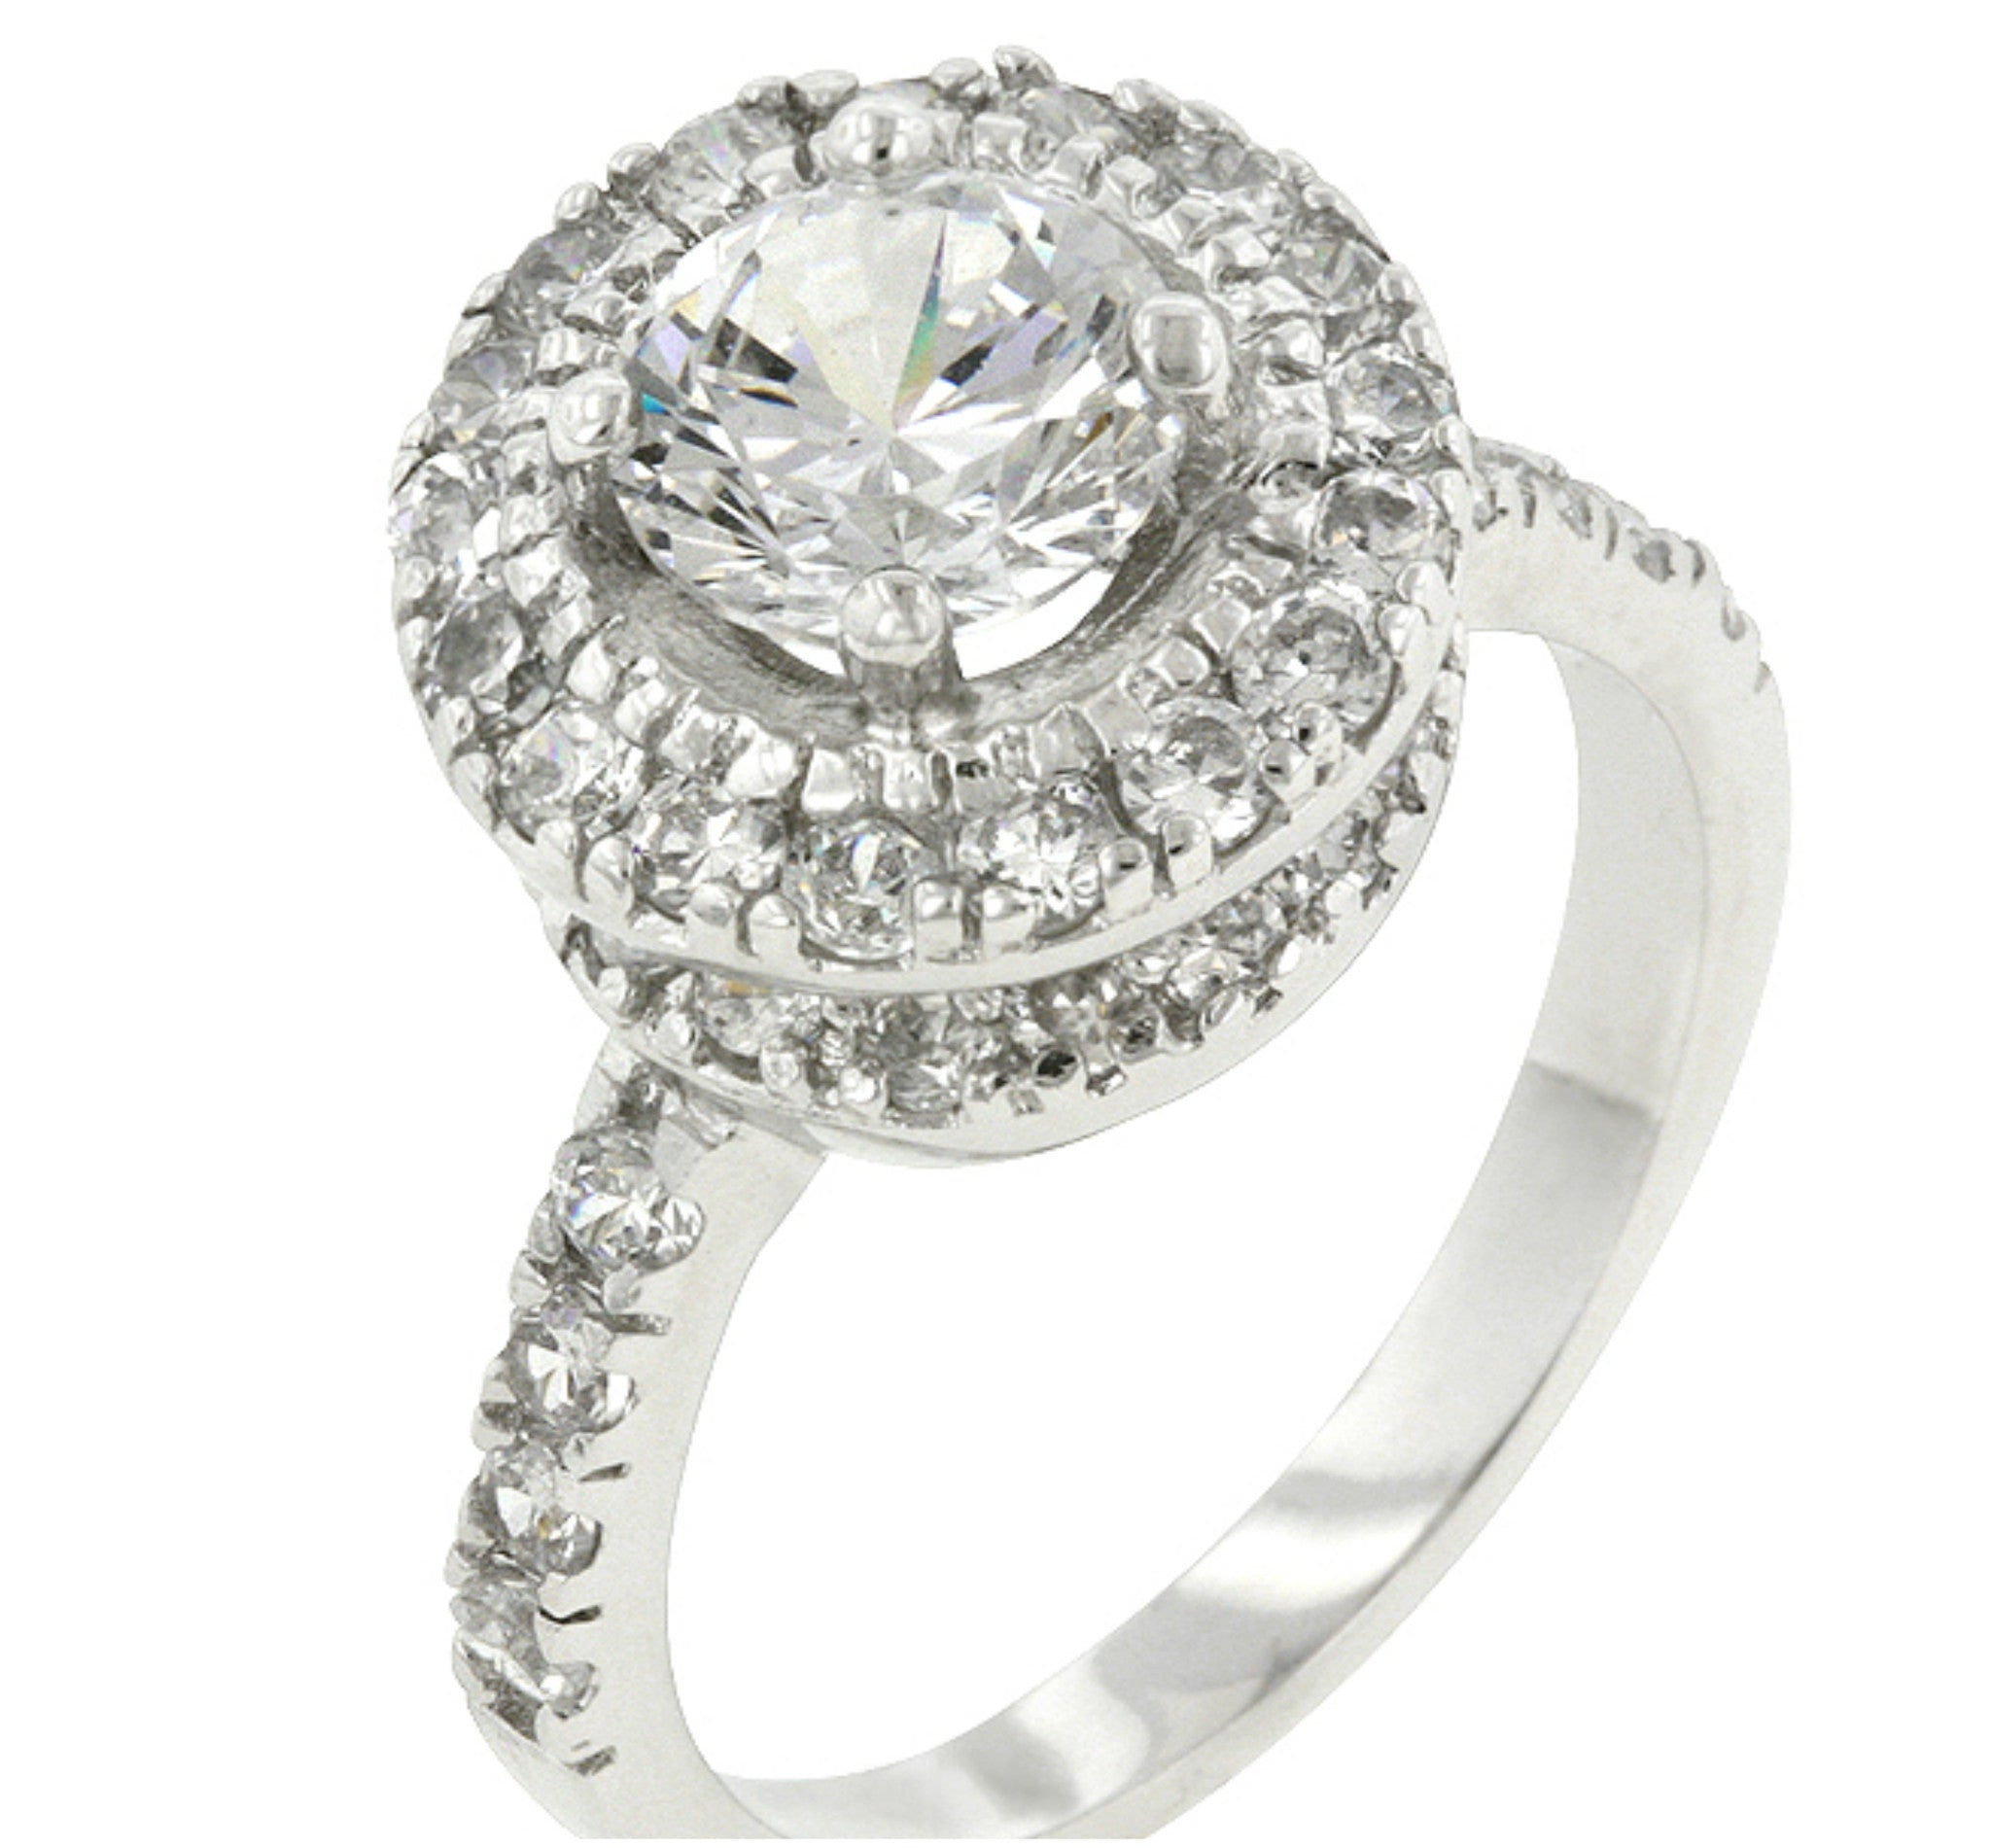 jacob solitaire top mercari toronto engagement ring white classic rings custom gold